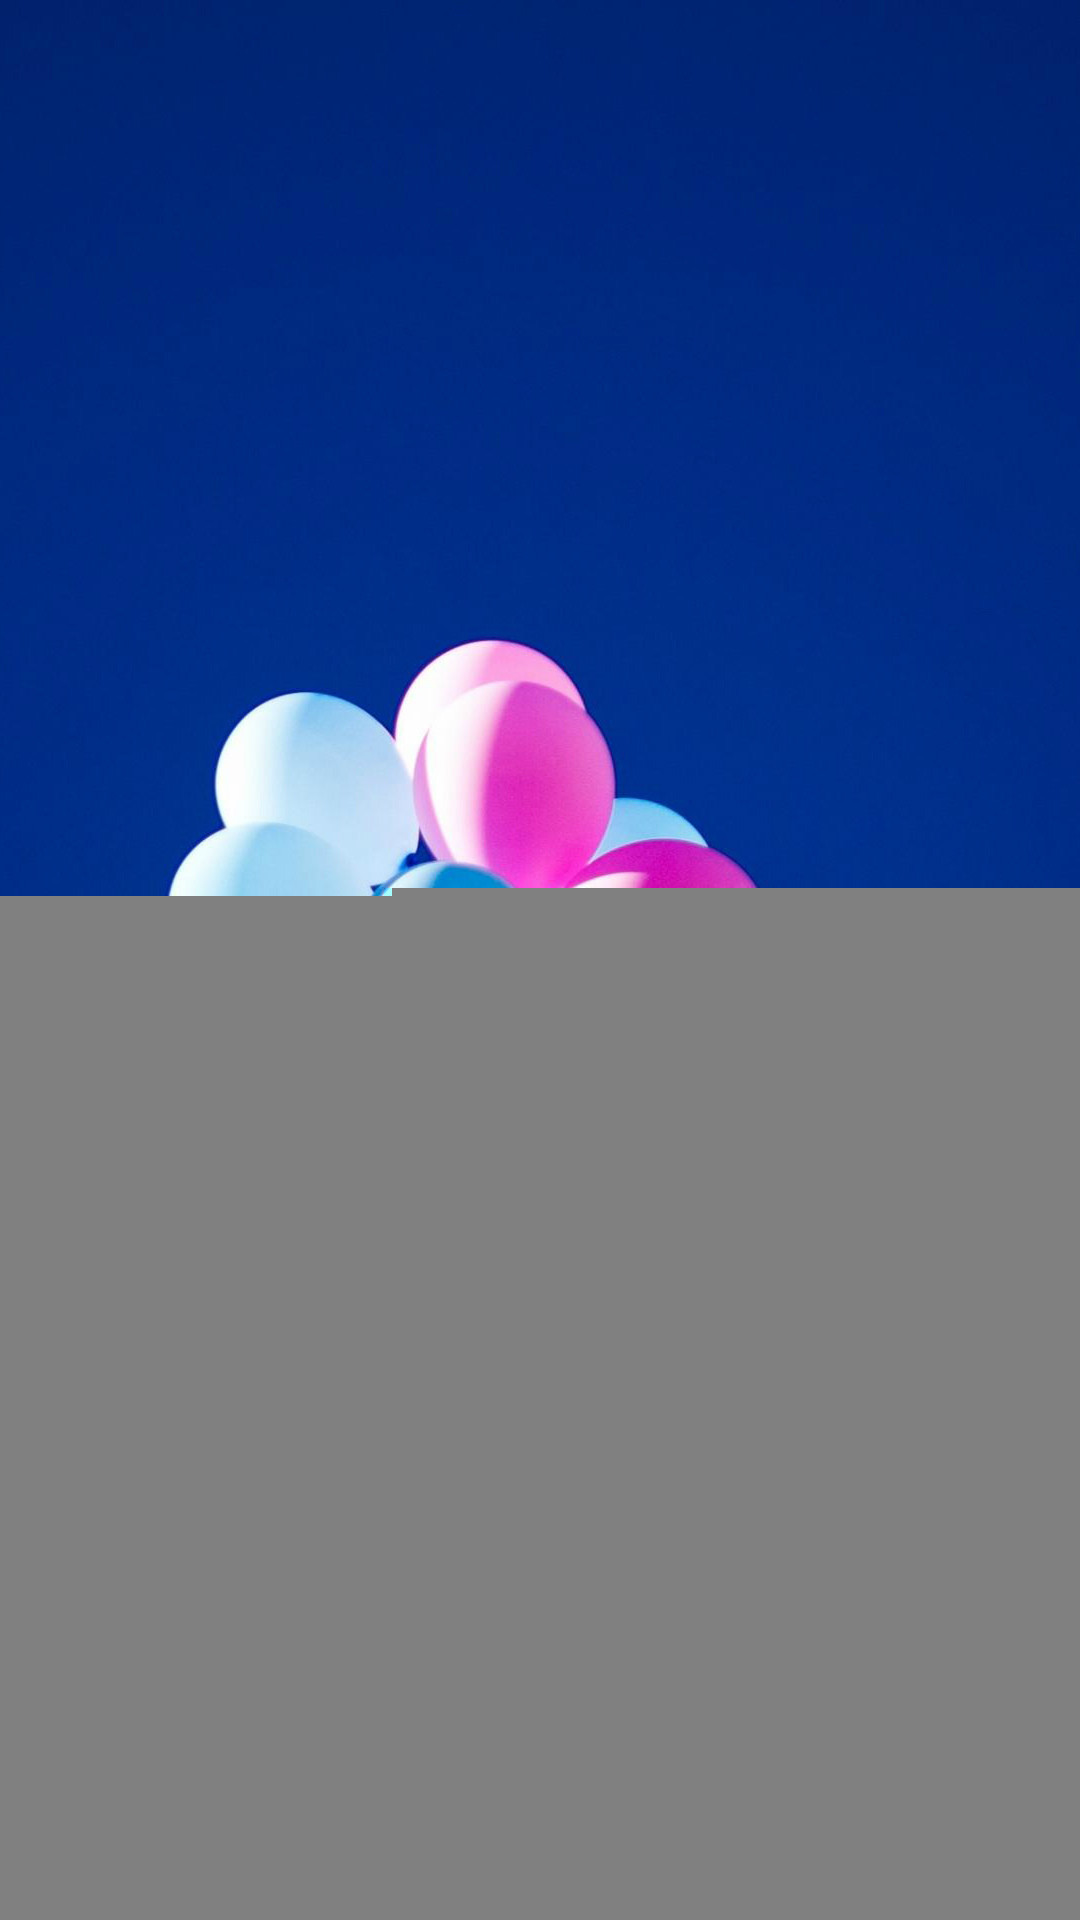 Flying Balloons In Blue Sky iPhone 8 wallpaper